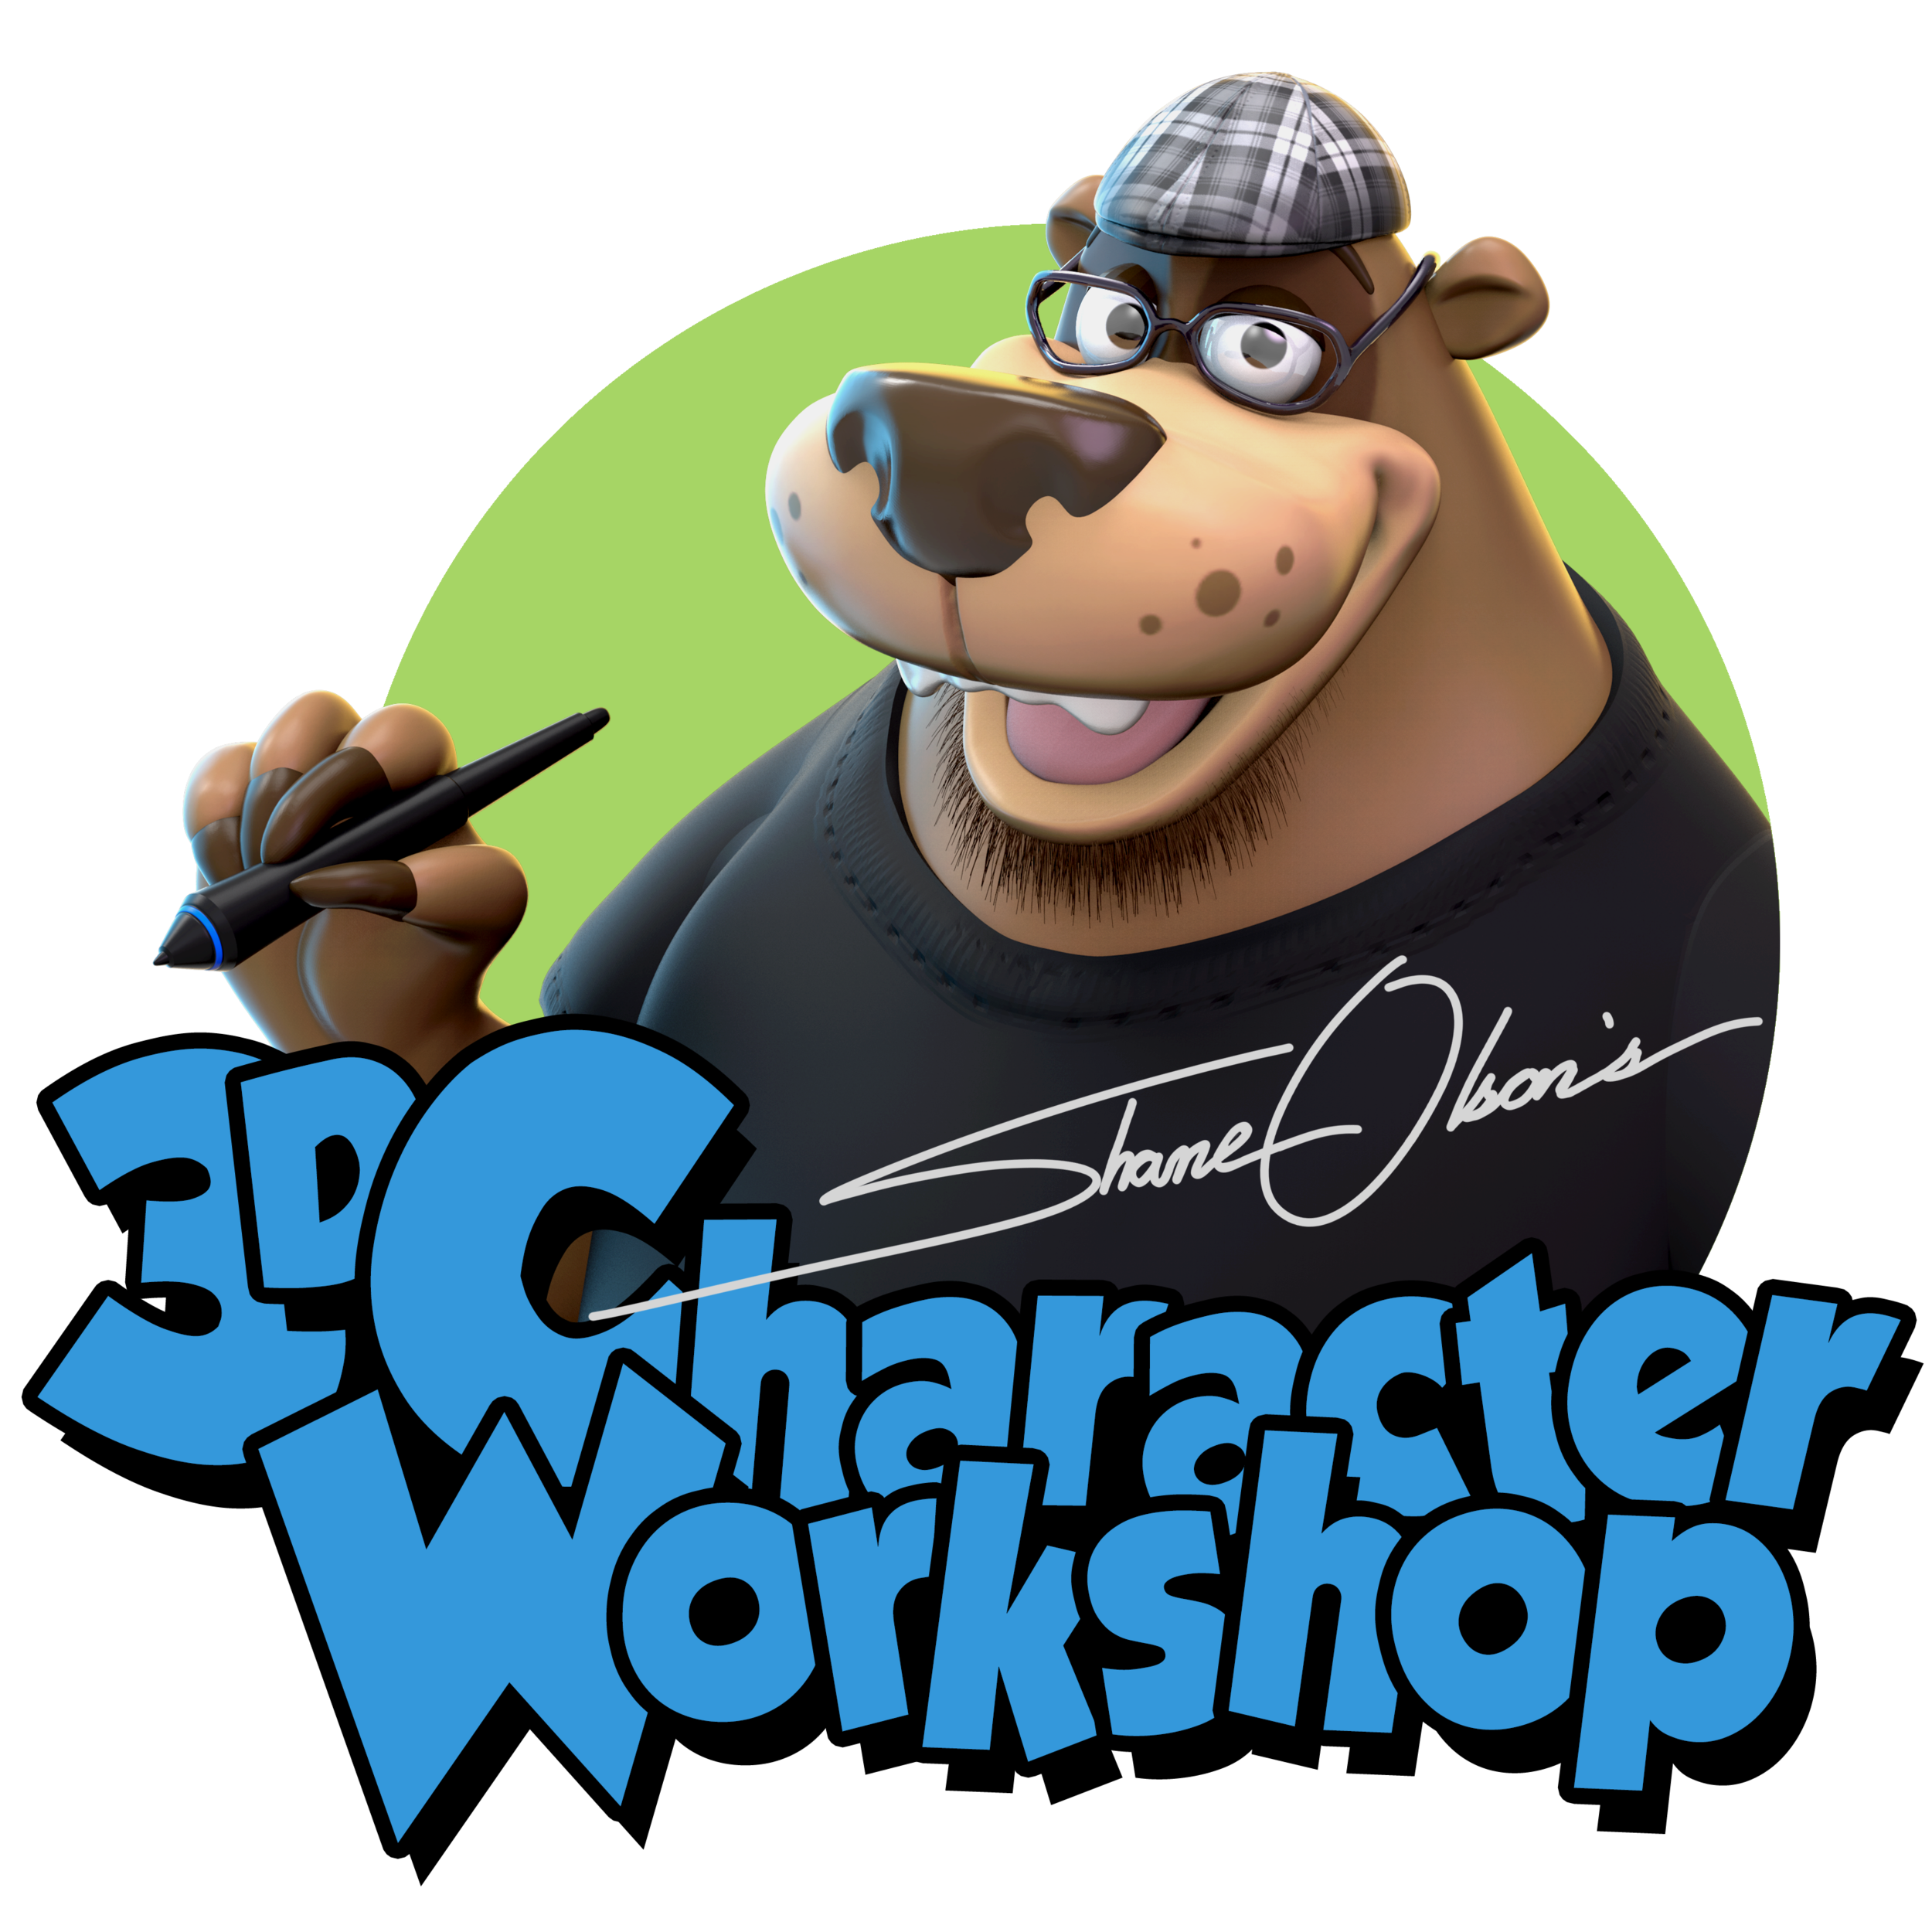 3D Character Workshop